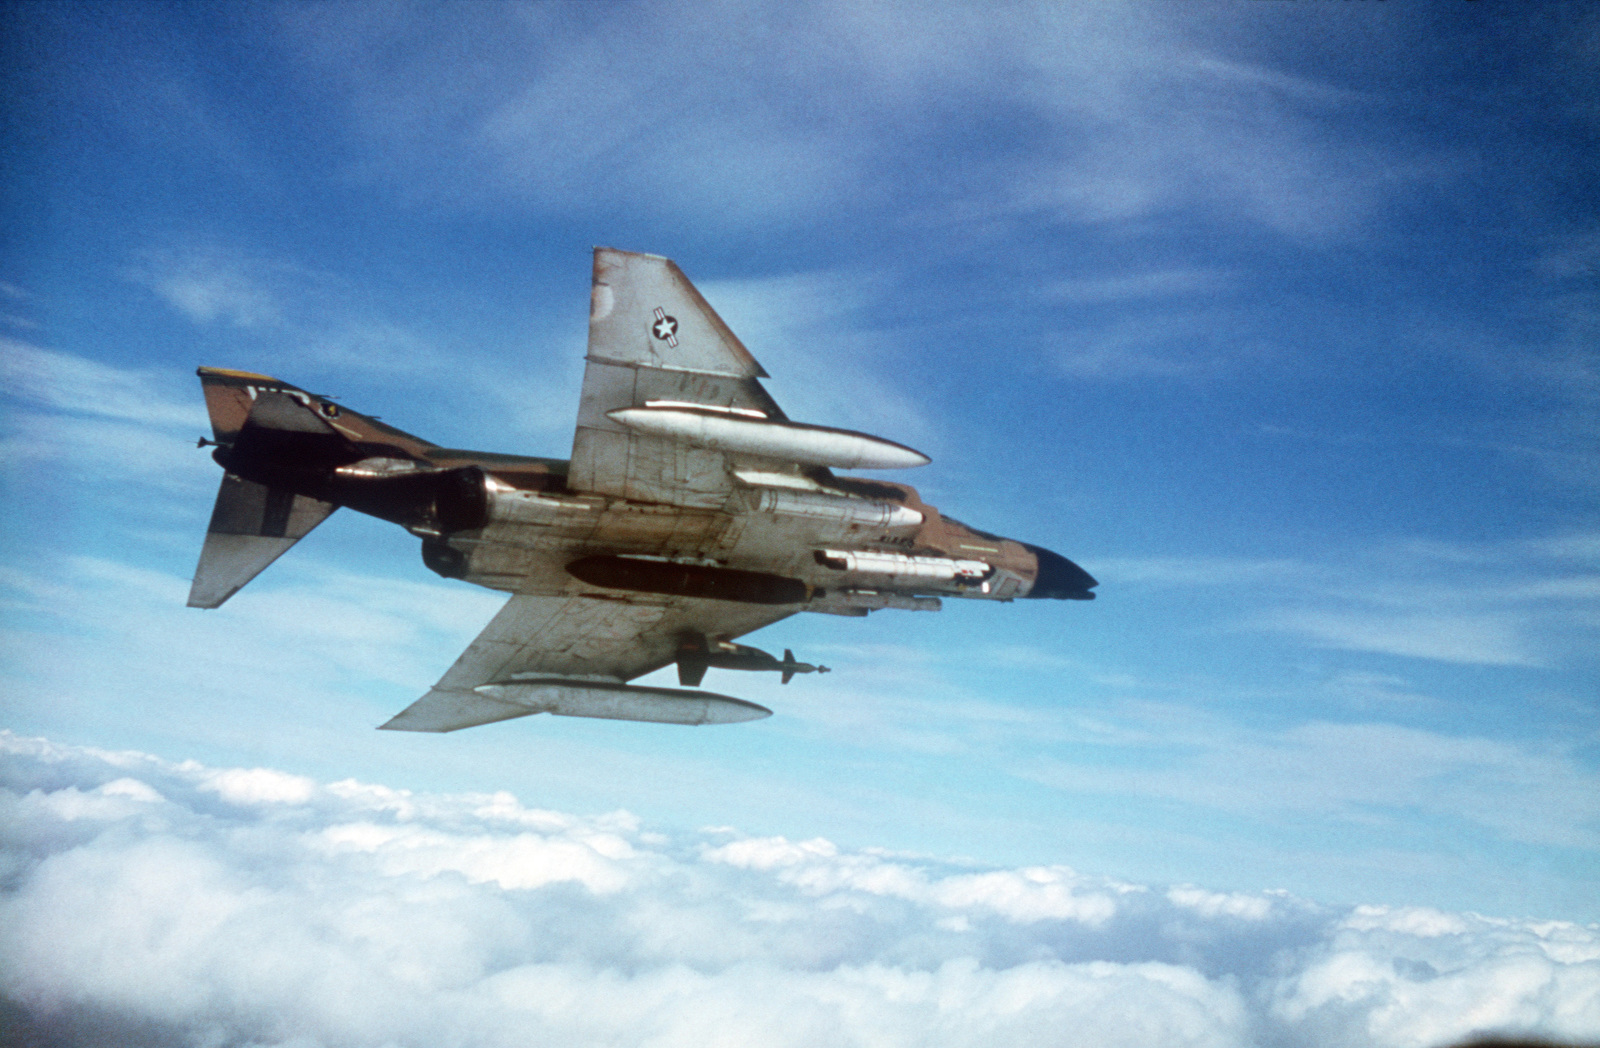 An air-to-air right underside view of an 8th Tactical Fighter Wing F-4D Phantom II aircraft.  The aircraft is equipped with a GBU-12D 500-pound laser-guided bomb, an AN/ALQ-119 electronic countermeasures pod, a Pave Spike laser designator, and a 20 mm gun pod